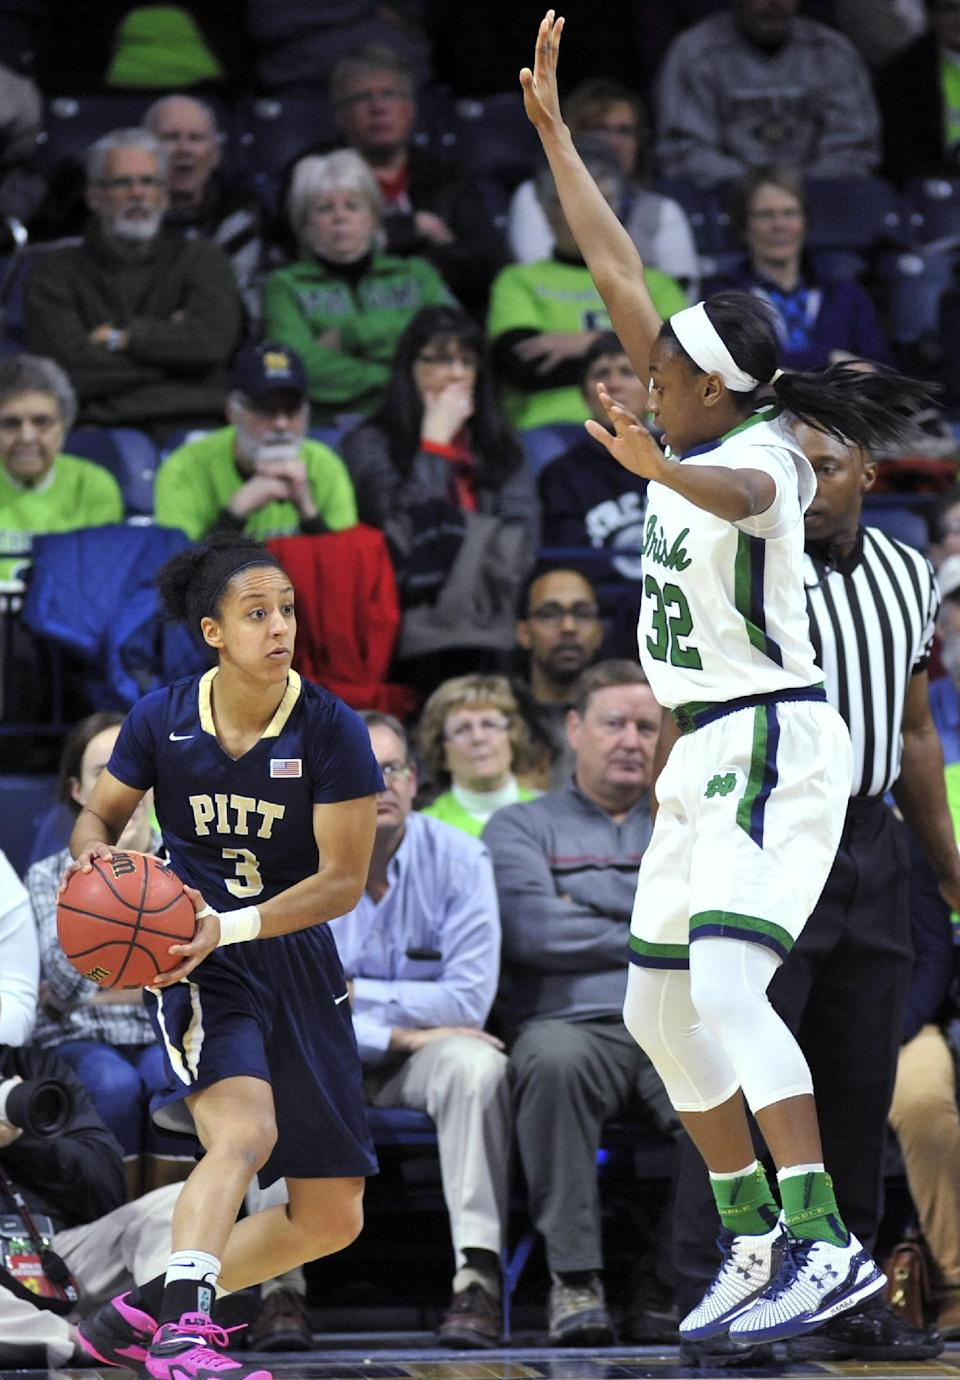 Pittsburgh guard Brianna Kiesel (3) looks to pass around Notre Dame guard Jewell Loyd (32) during the first half of an NCAA college basketball game Thursday, Feb. 26, 2015, in South Bend, Ind. (AP Photo/Joe Raymond)